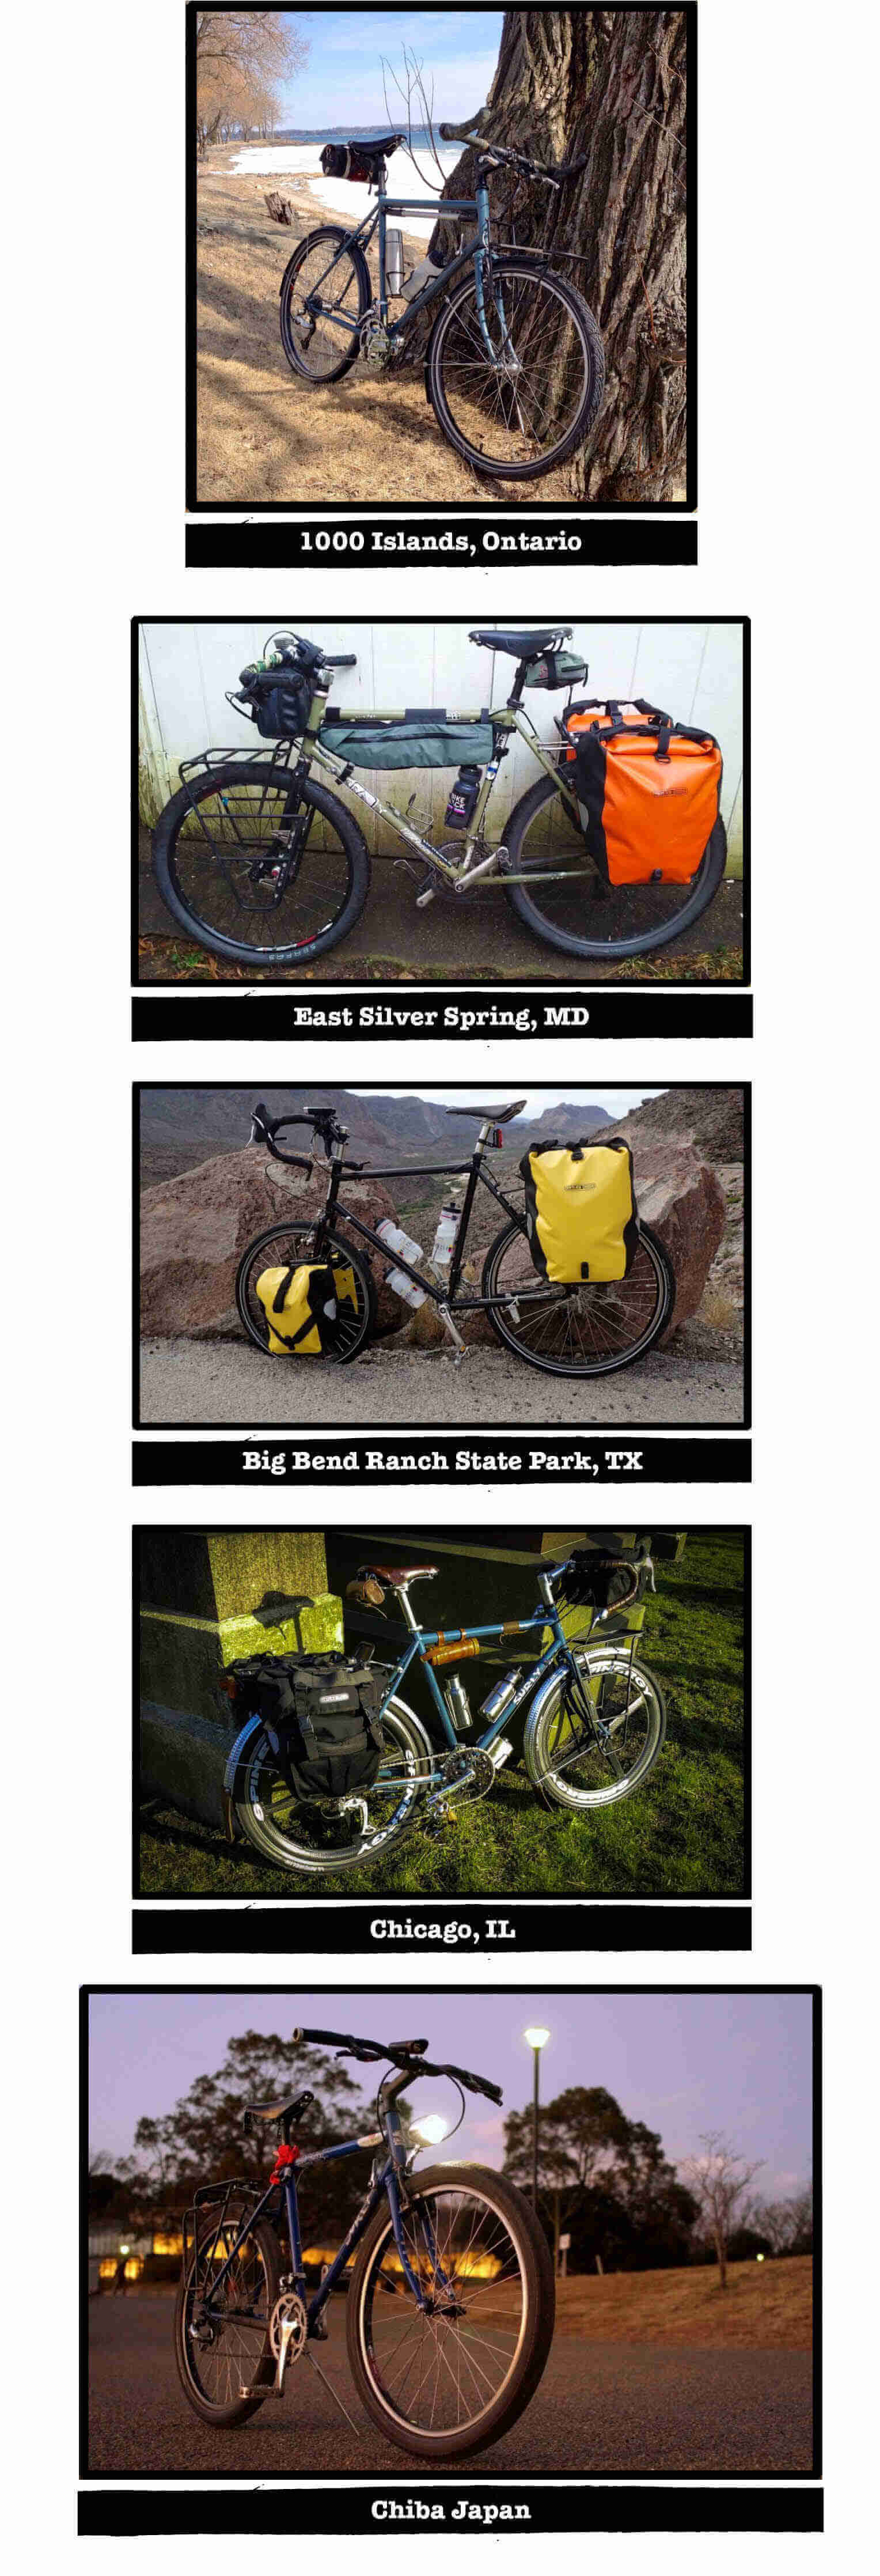 Multiple images of Surly Trucker bikes, with tags of their specific location listed below each image